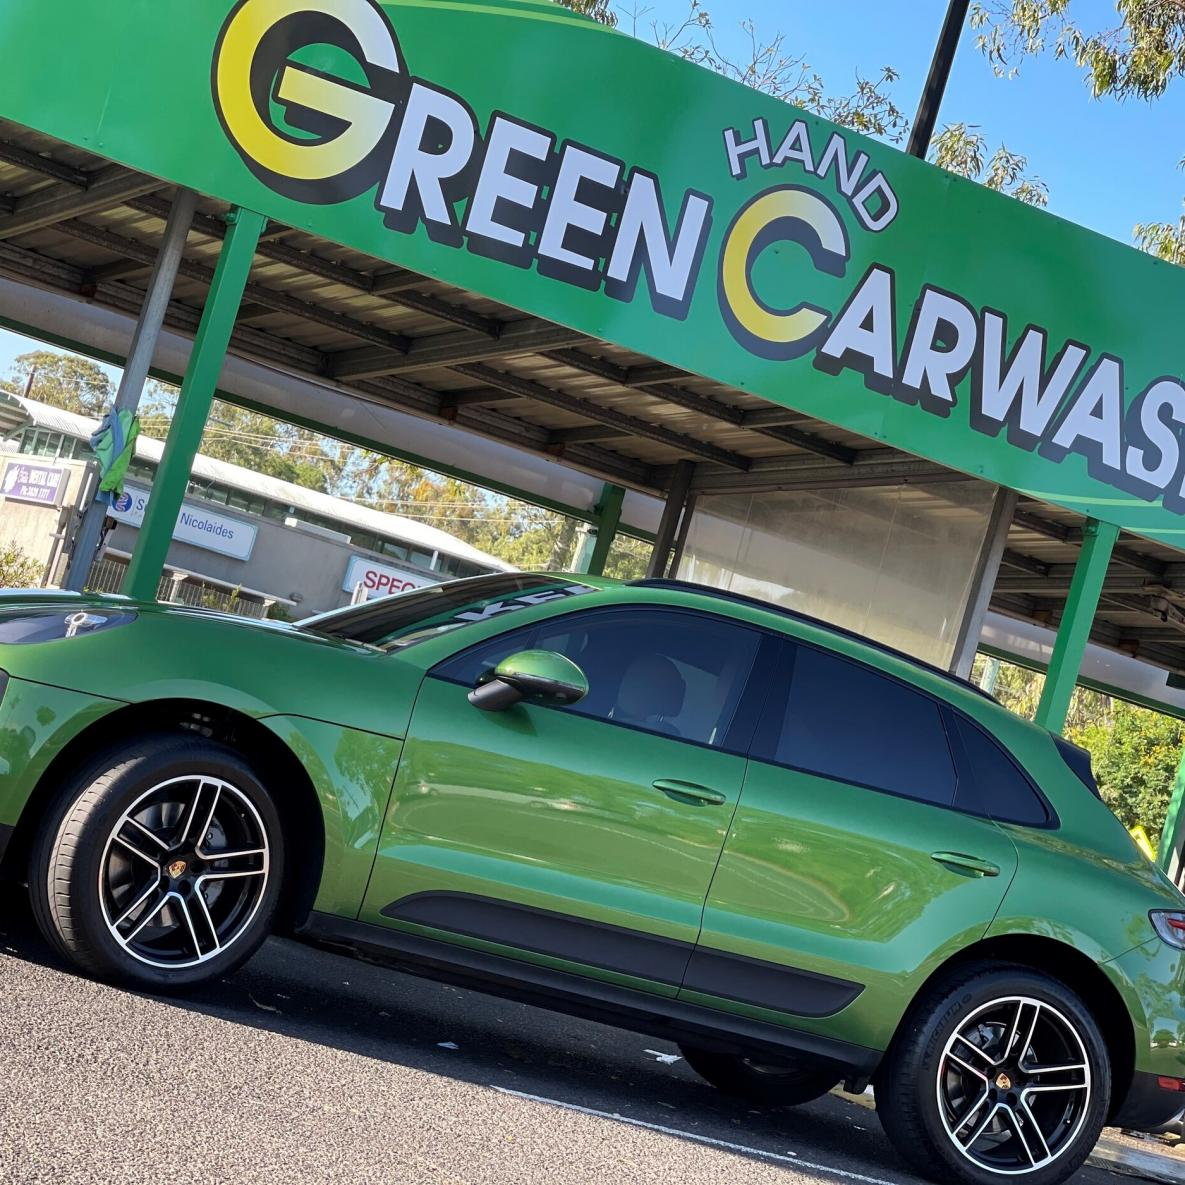 Green Hand Carwash Cleveland Central